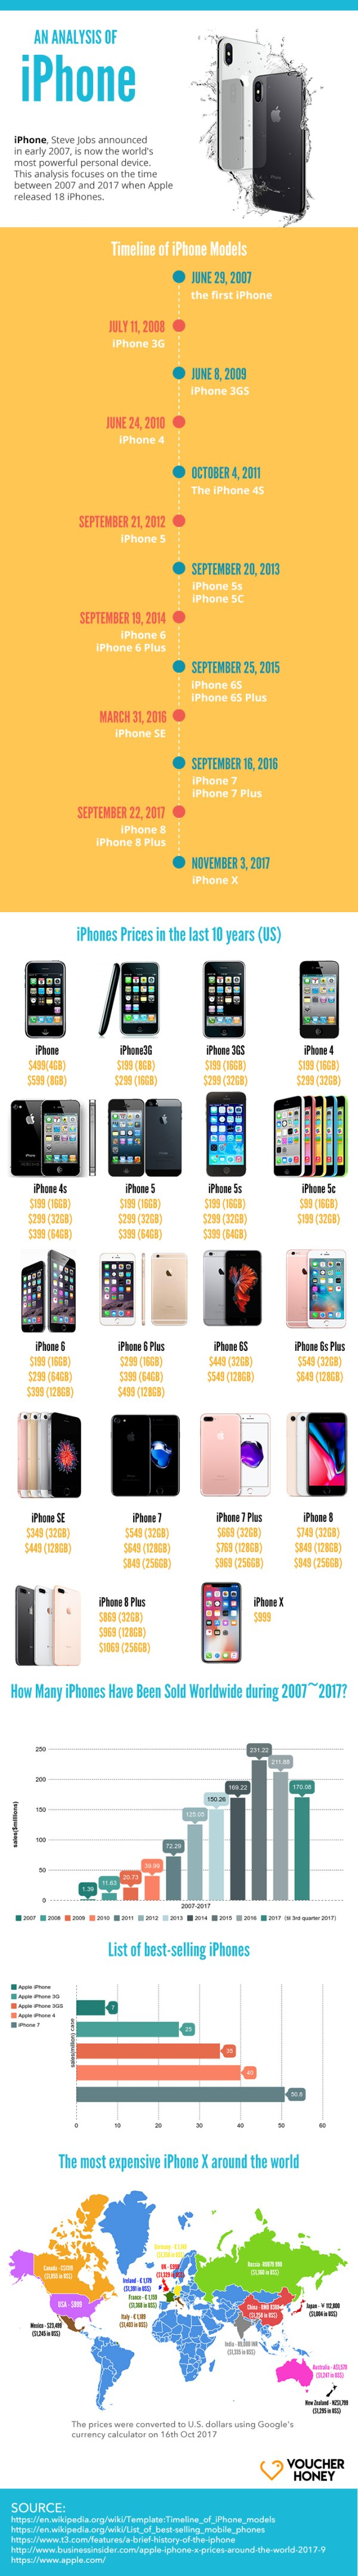 Analysis of the iPhone-infographic-galleryr